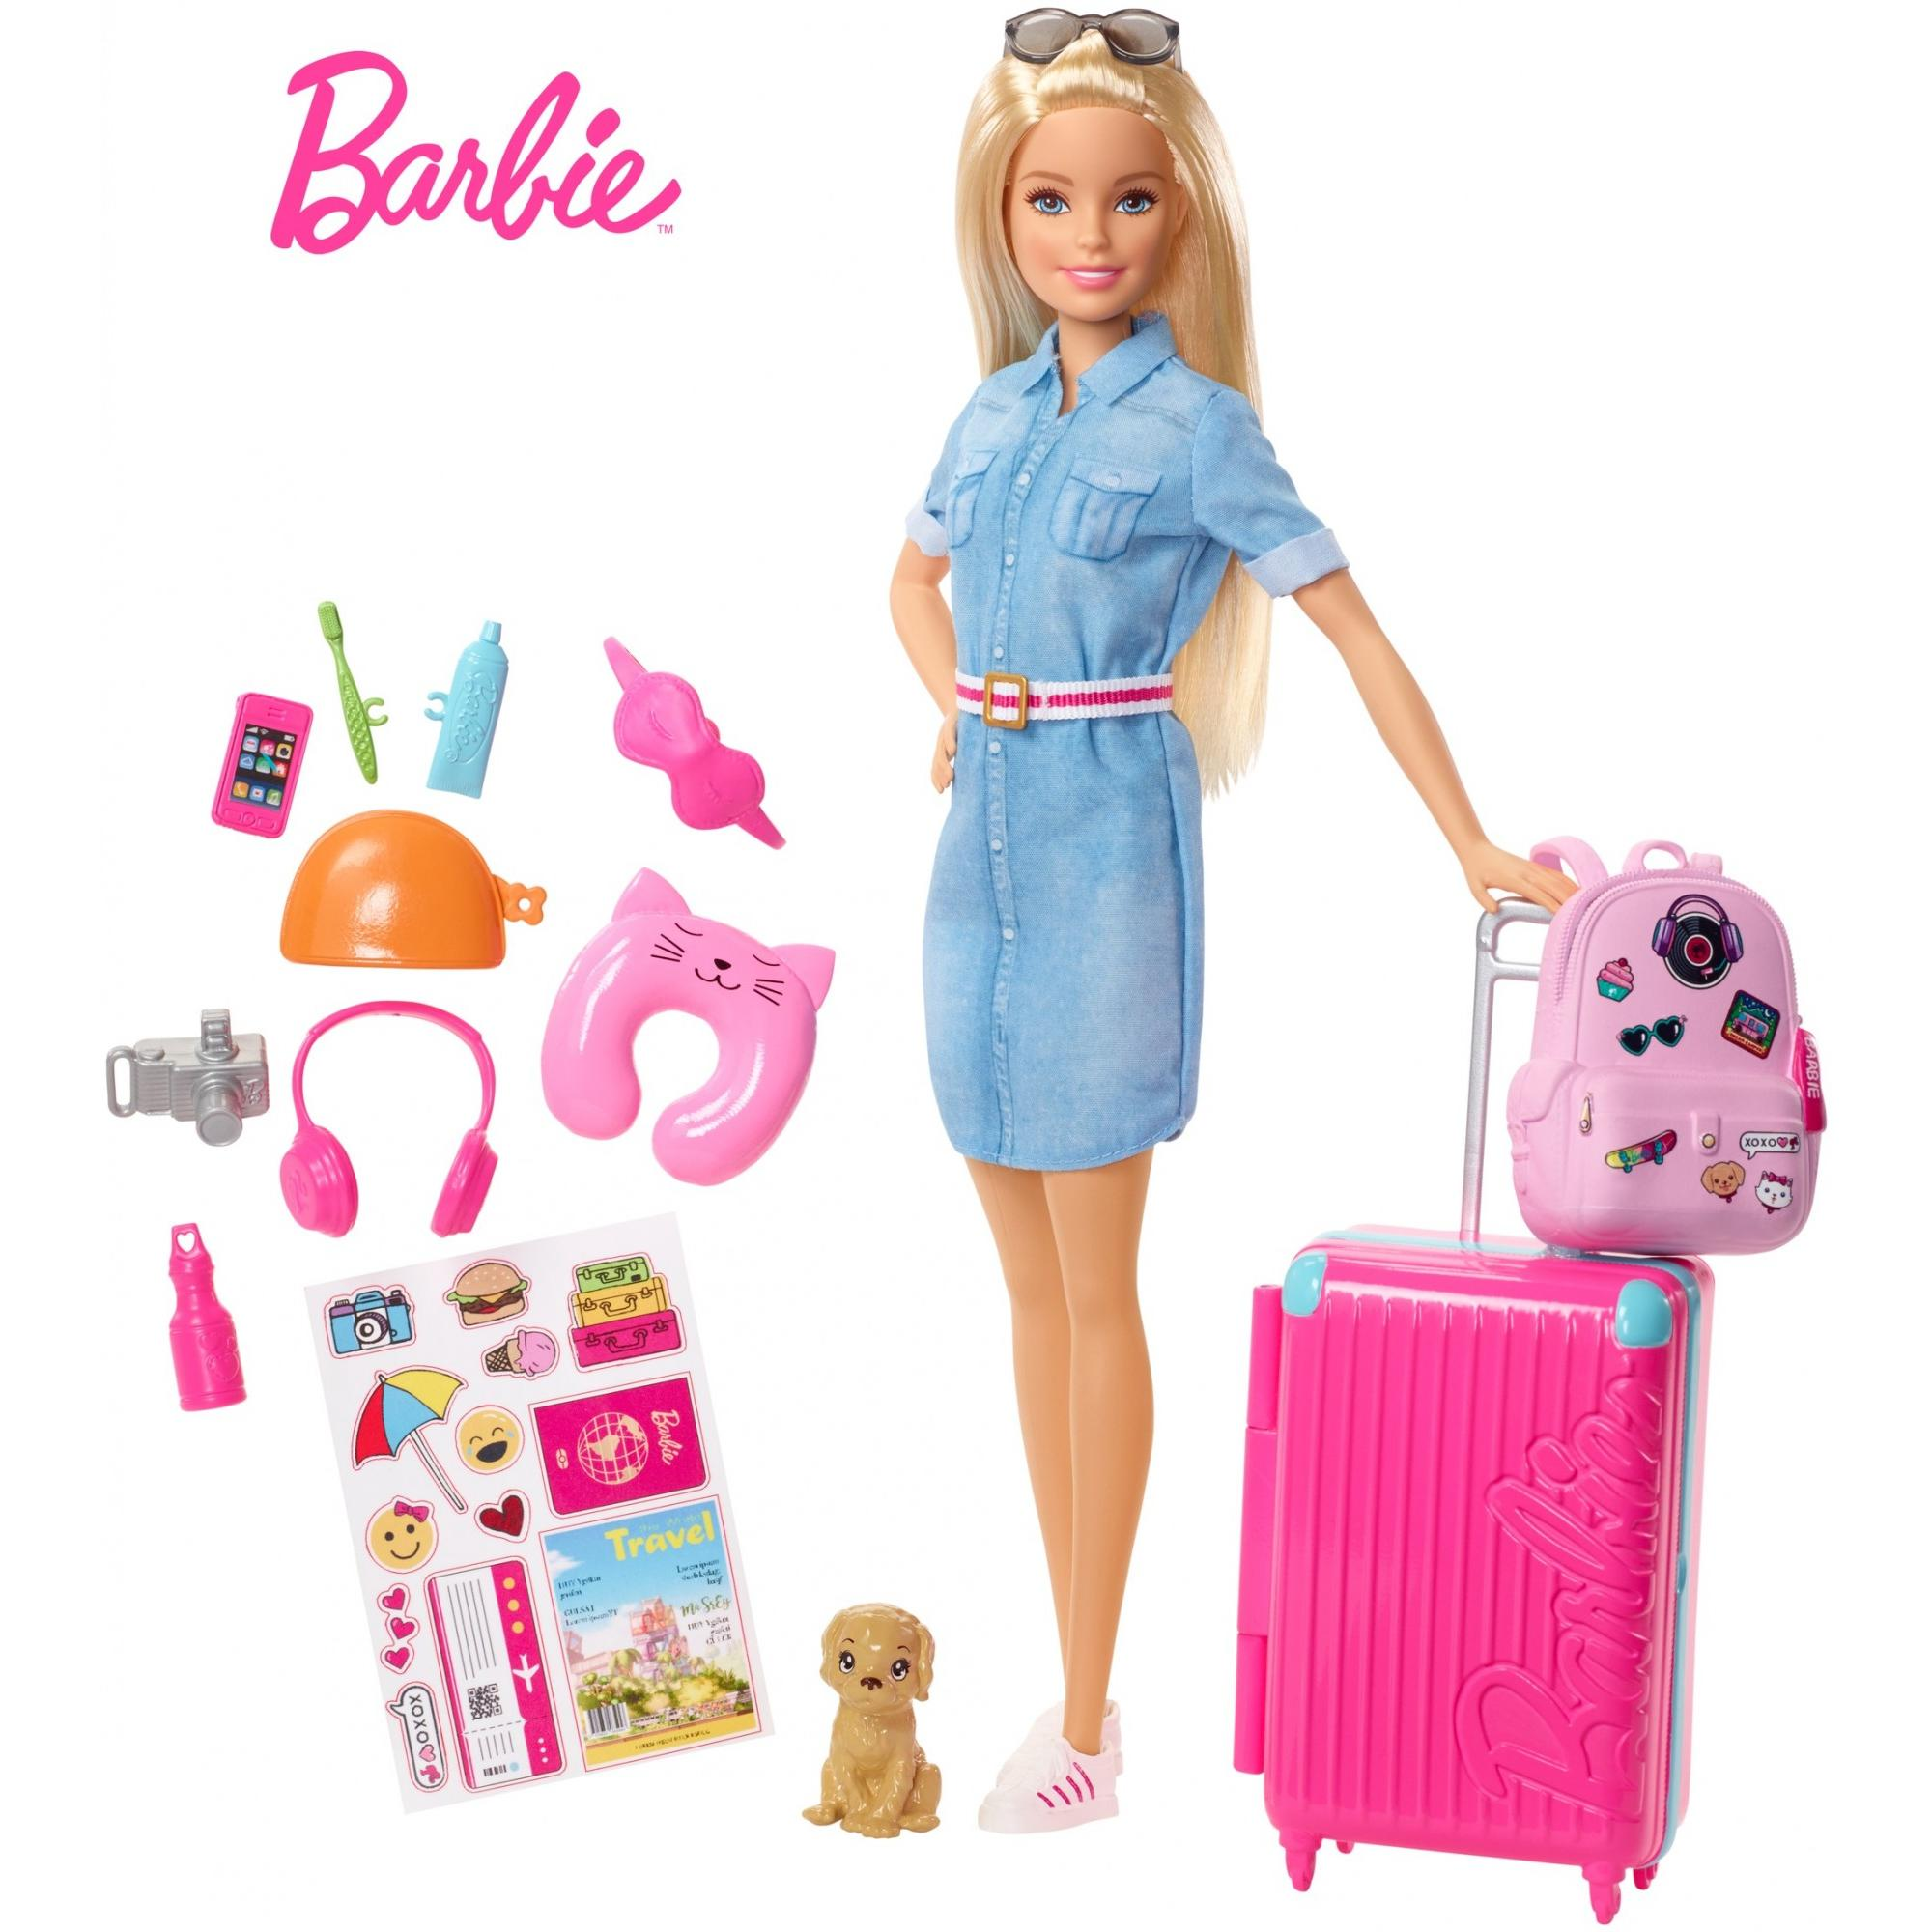 $14.99 (reg $20) Barbie Travel Doll & Puppy Playset